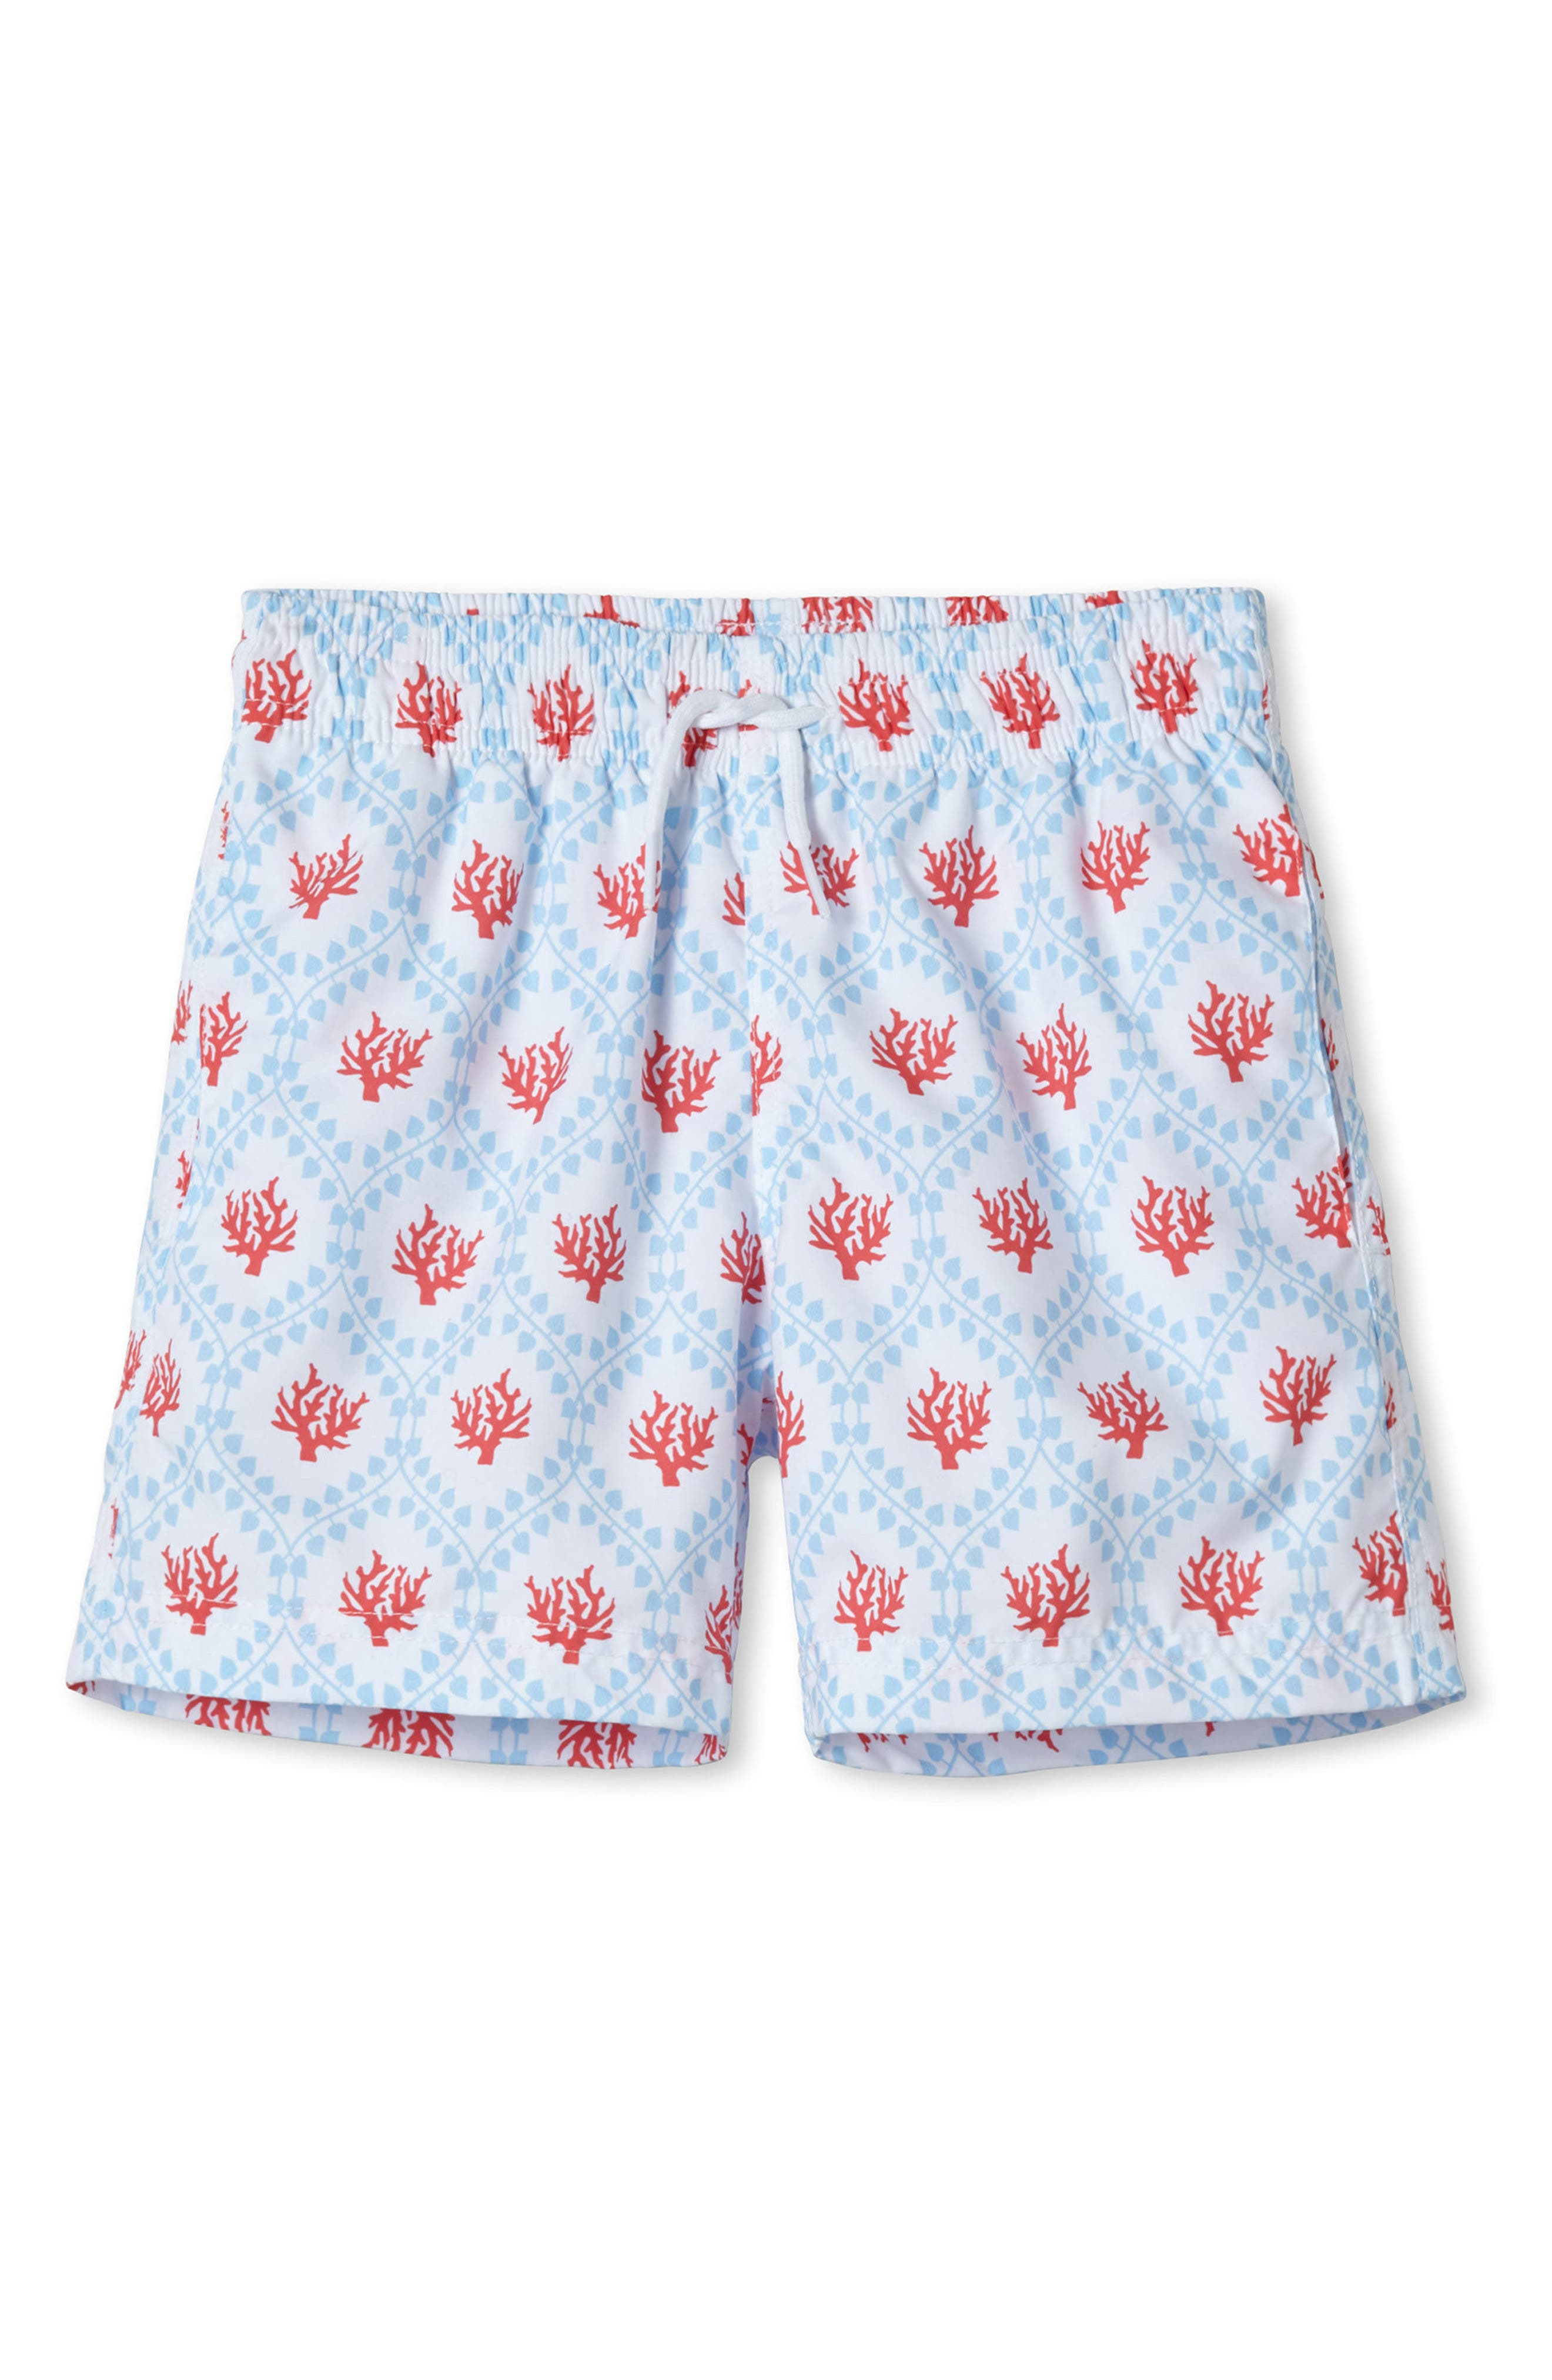 Red Coral Swim Trunks,                         Main,                         color, Blue